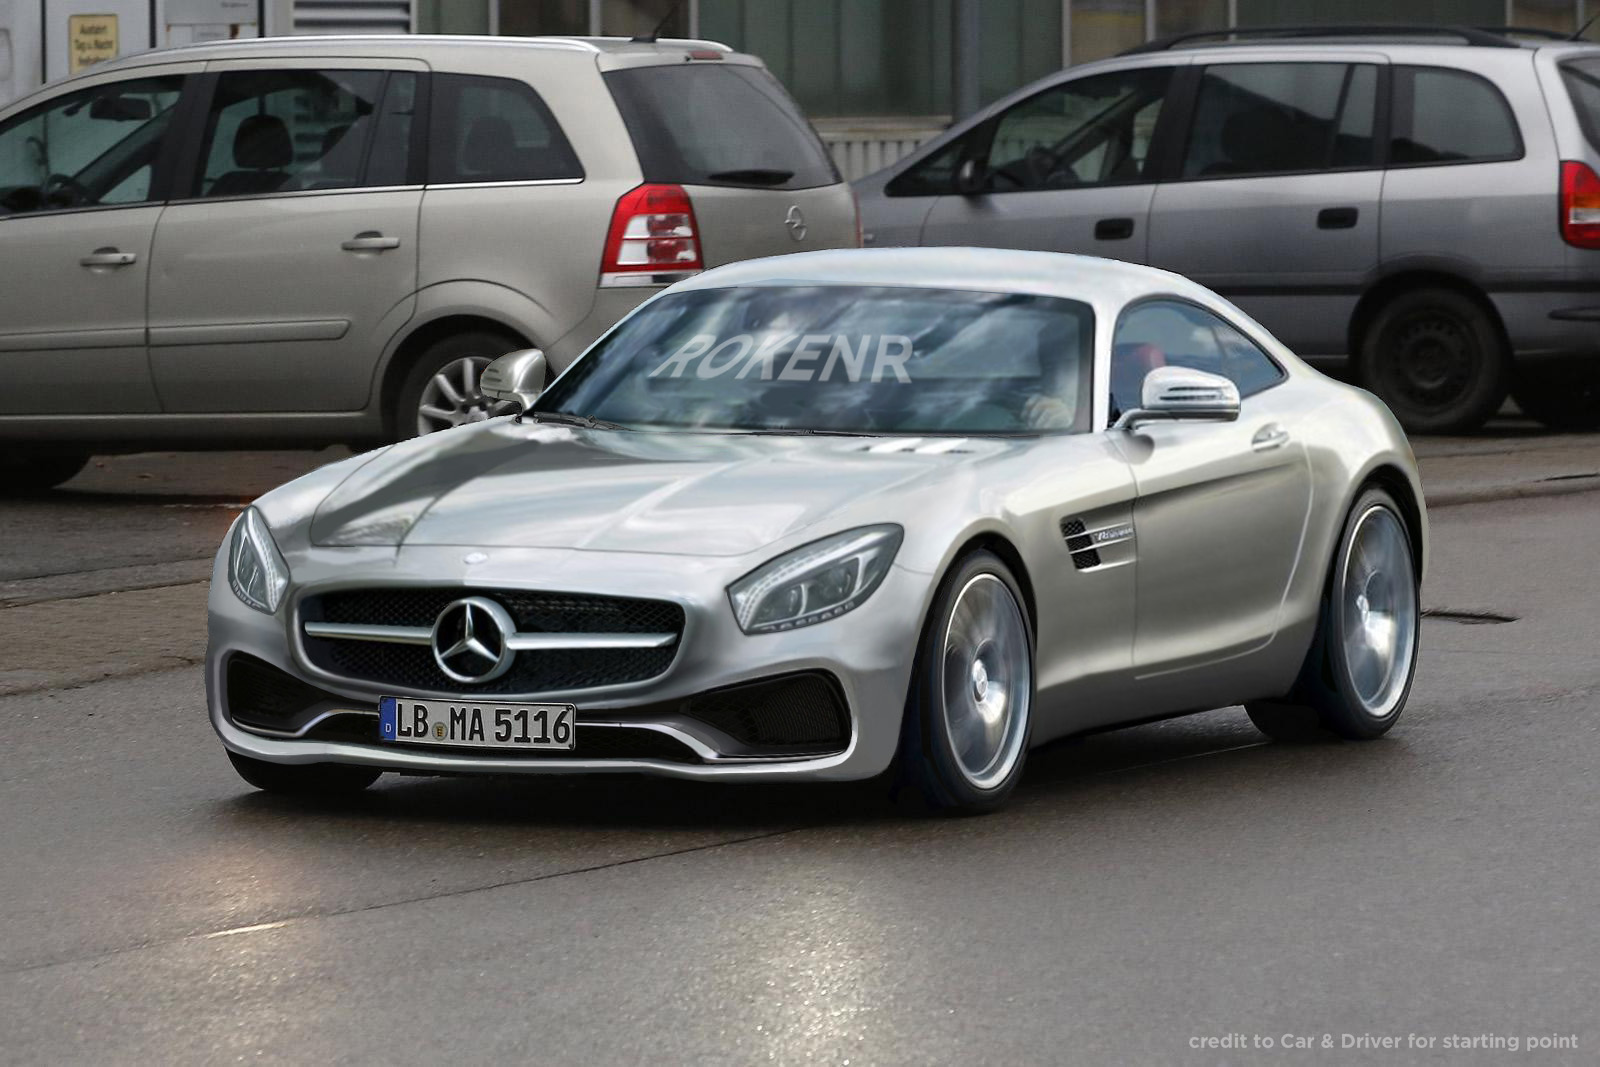 AMG GT render What the 2015 Mercedes AMG GT will Possibly Look Like